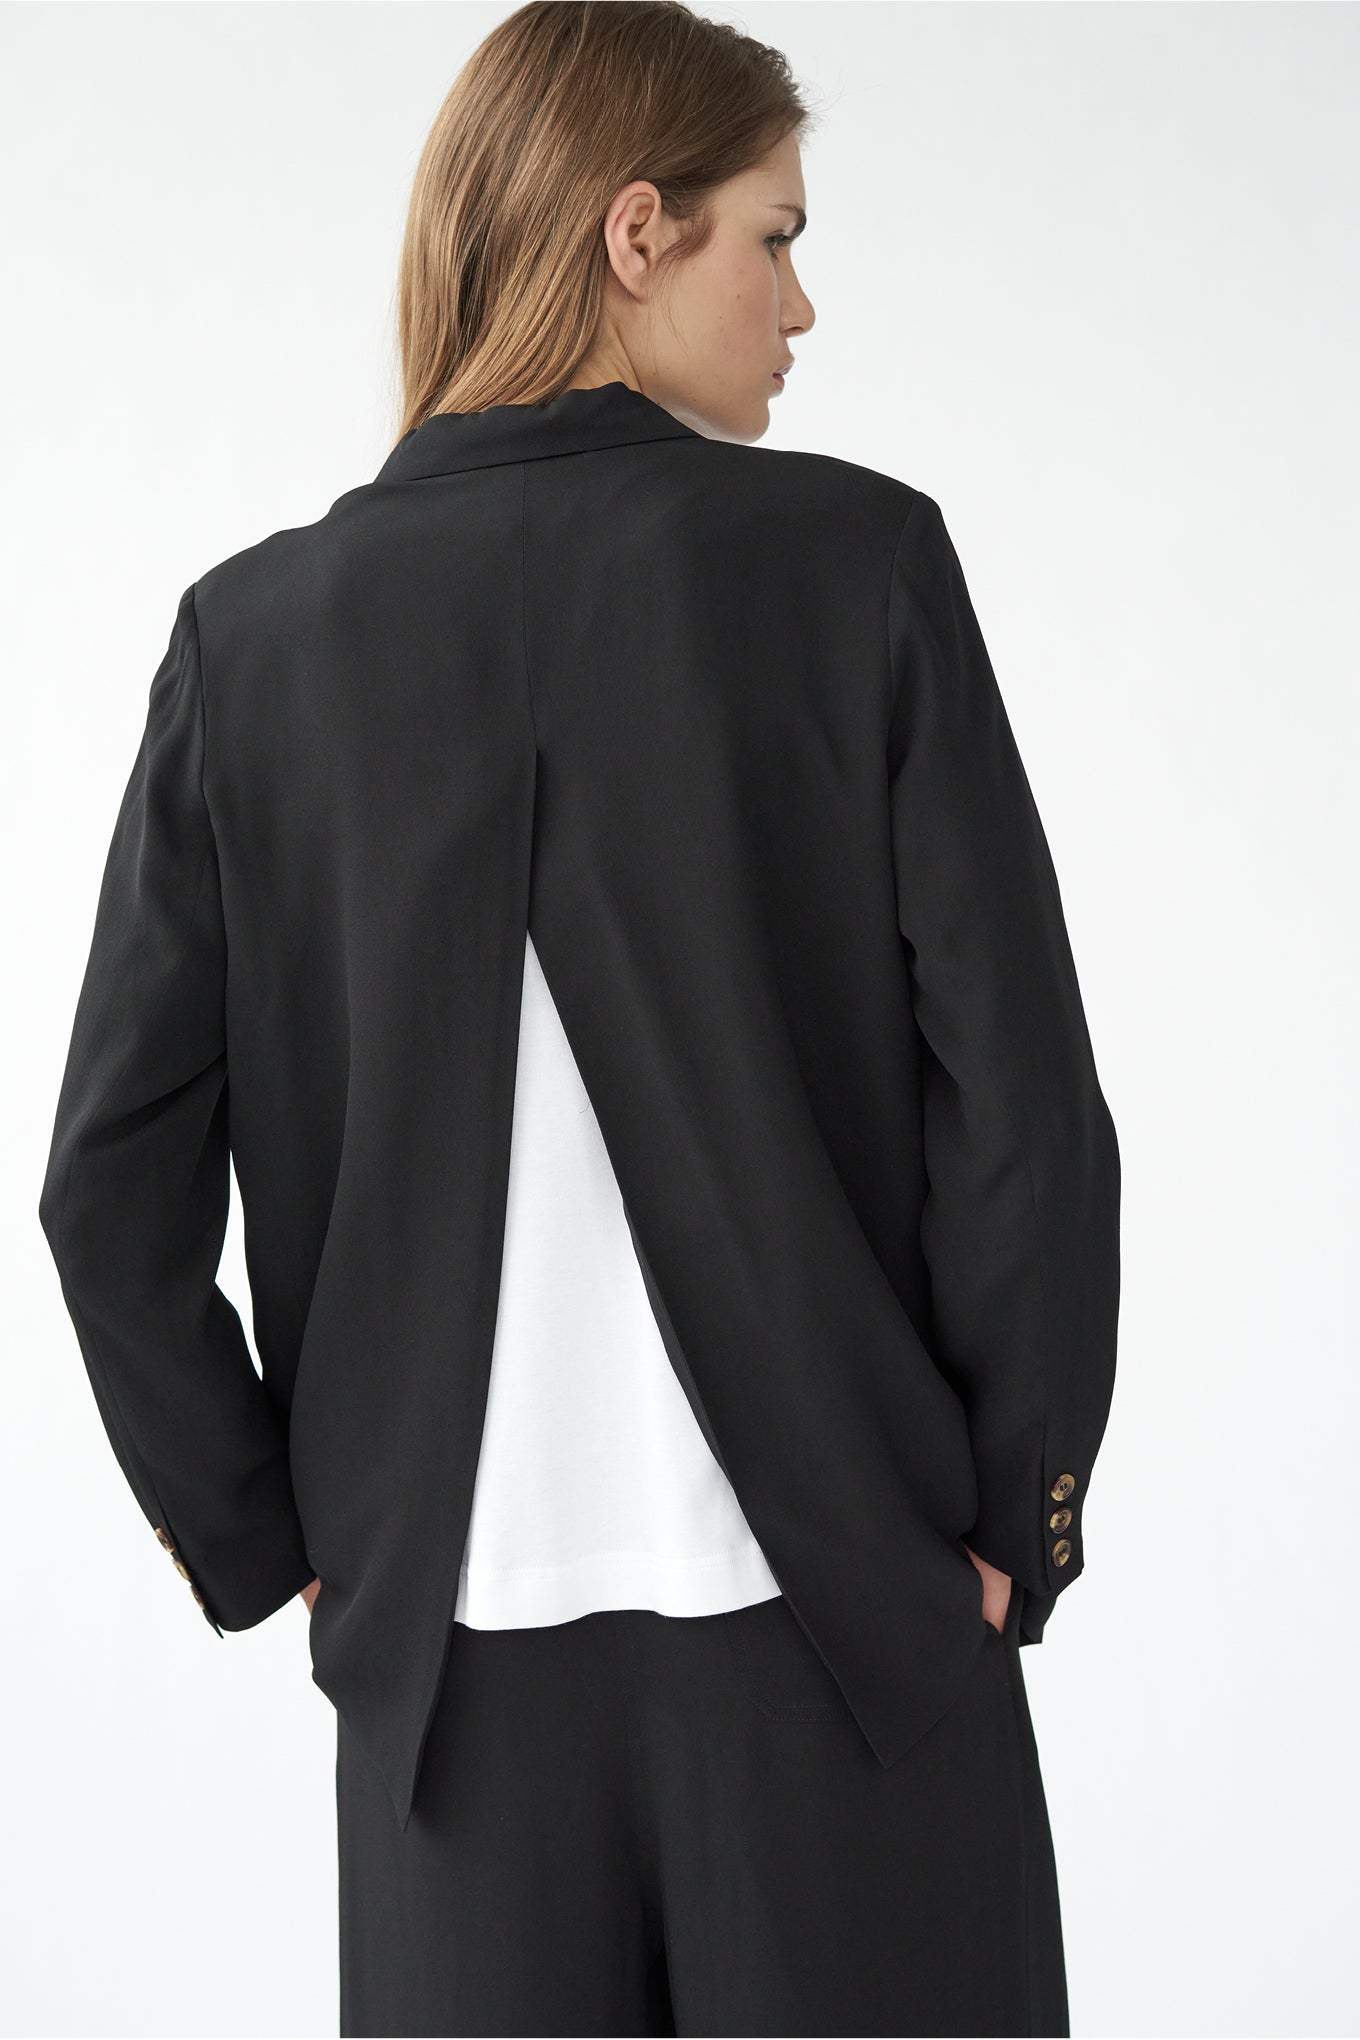 Otis Blazer - Black